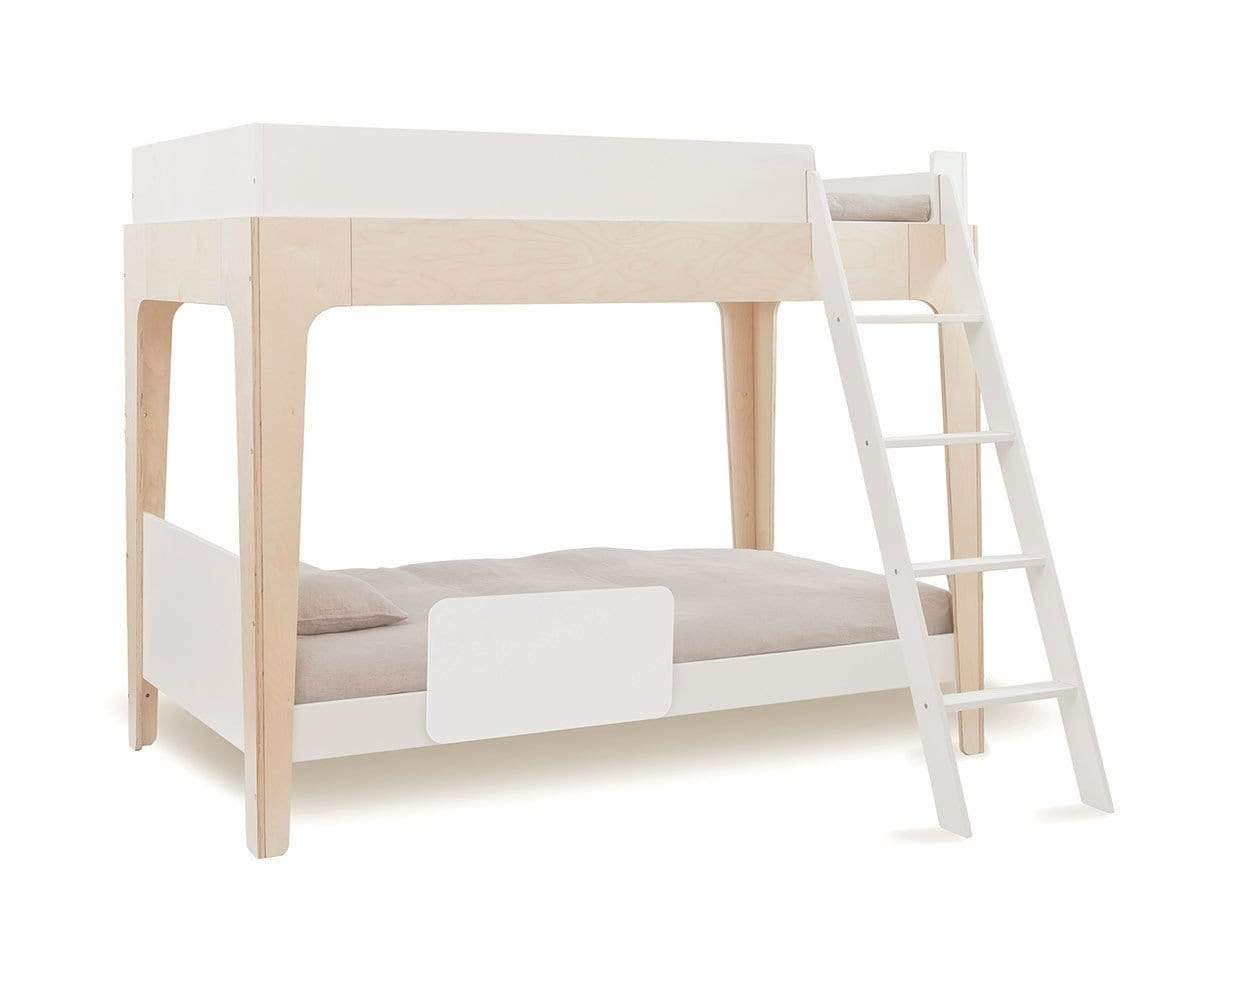 Perch Twin Bunk Bed - Birch